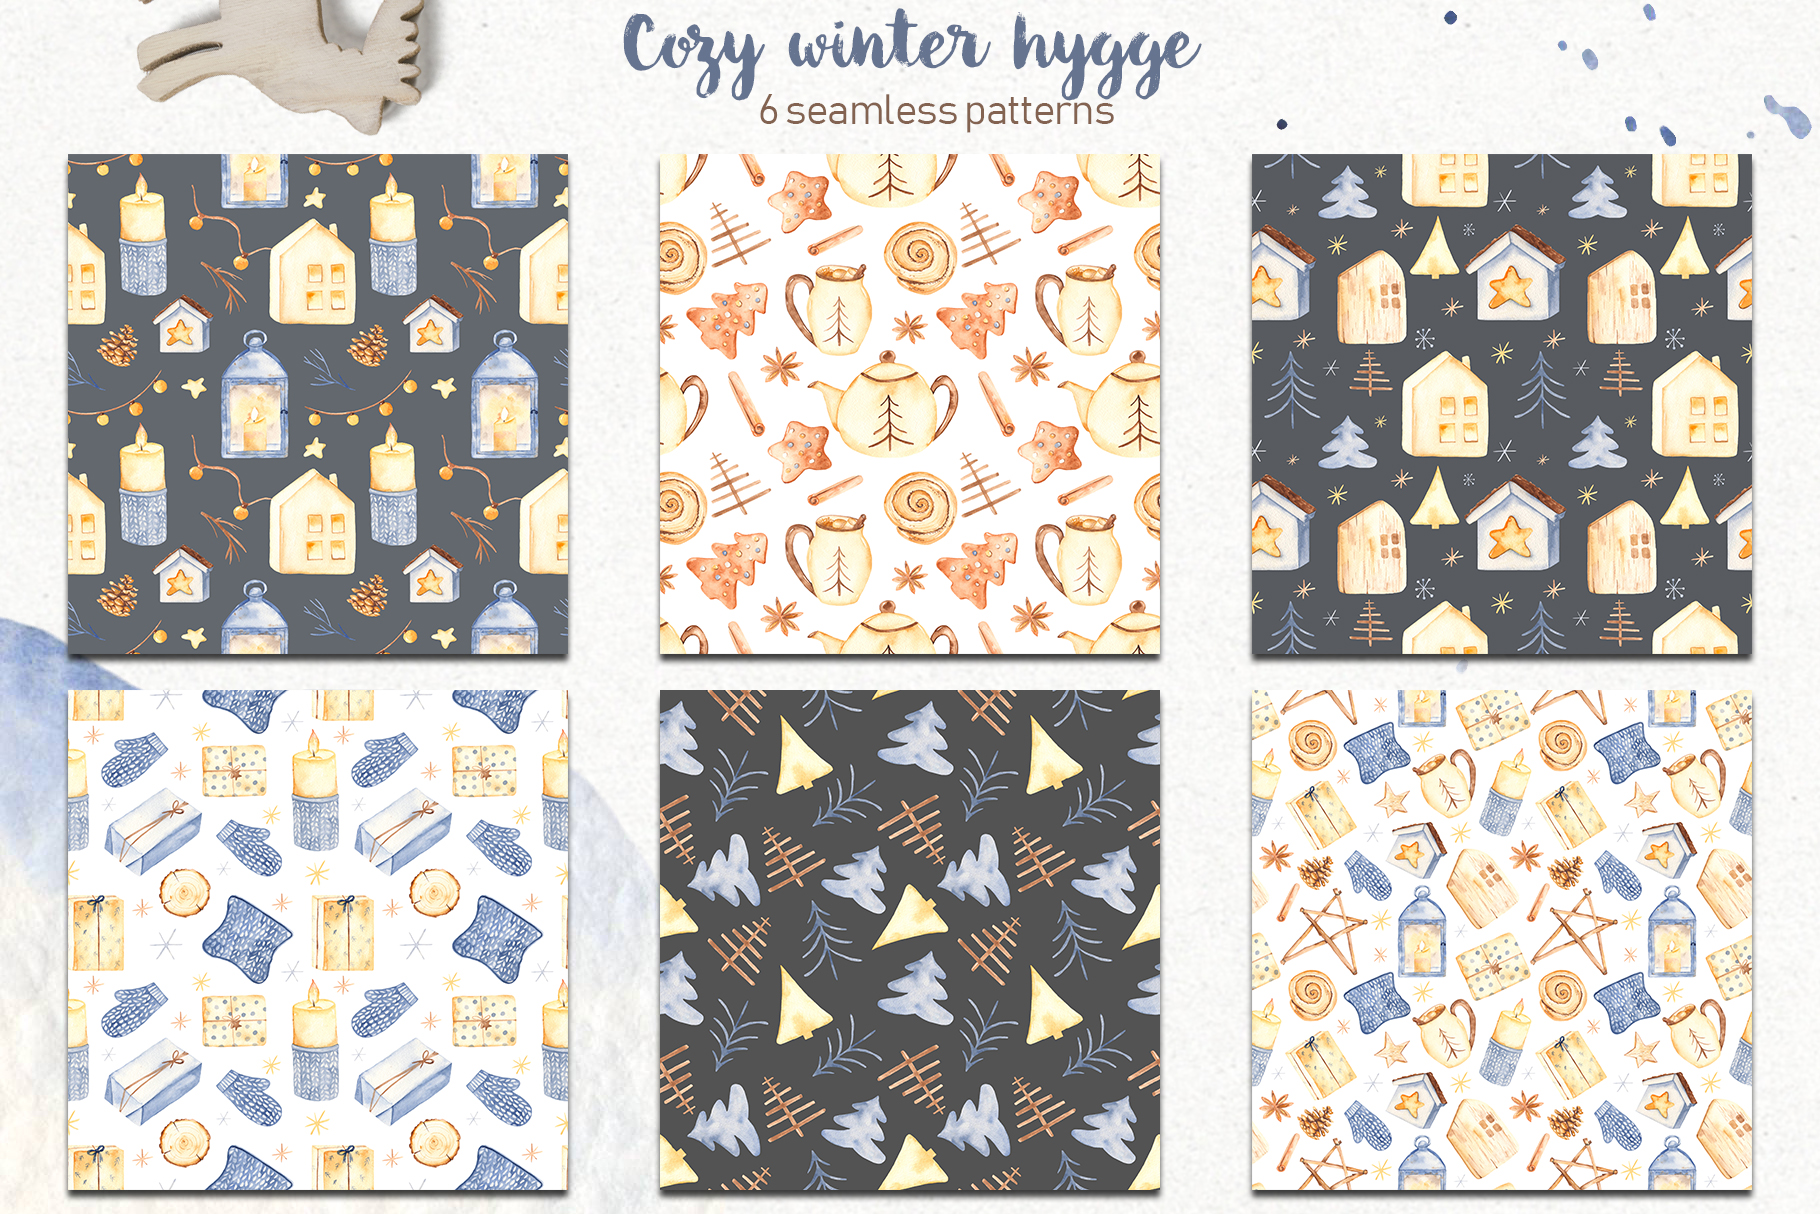 Hygge watercolor clipart Christmas cozy winter collection example image 6